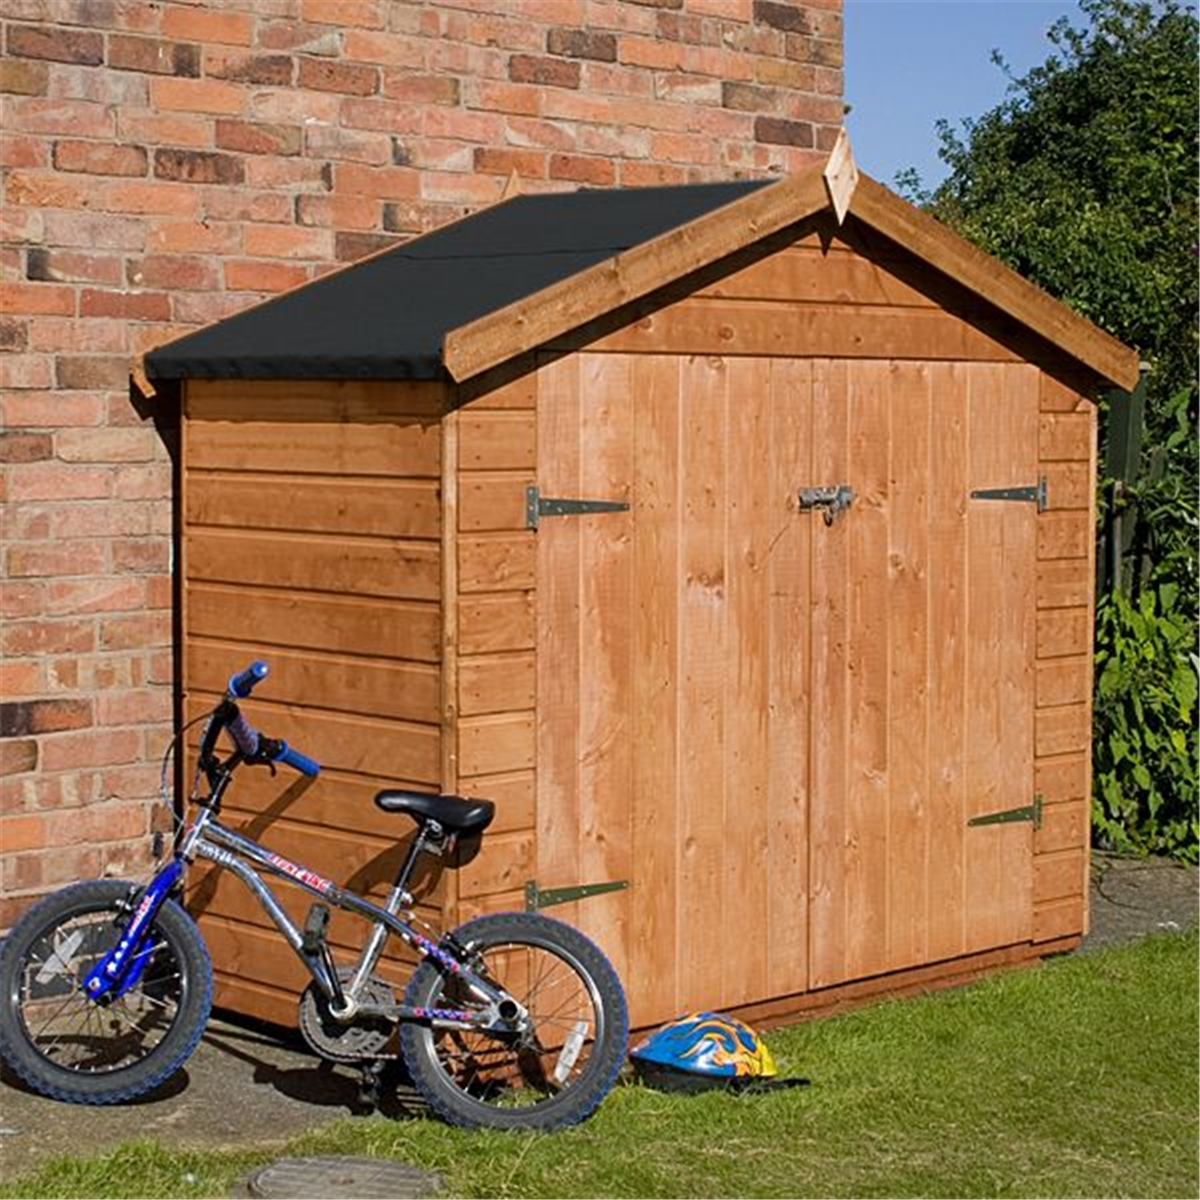 7 x 3 premier tongue and groove bike store 10mm solid osb. Black Bedroom Furniture Sets. Home Design Ideas